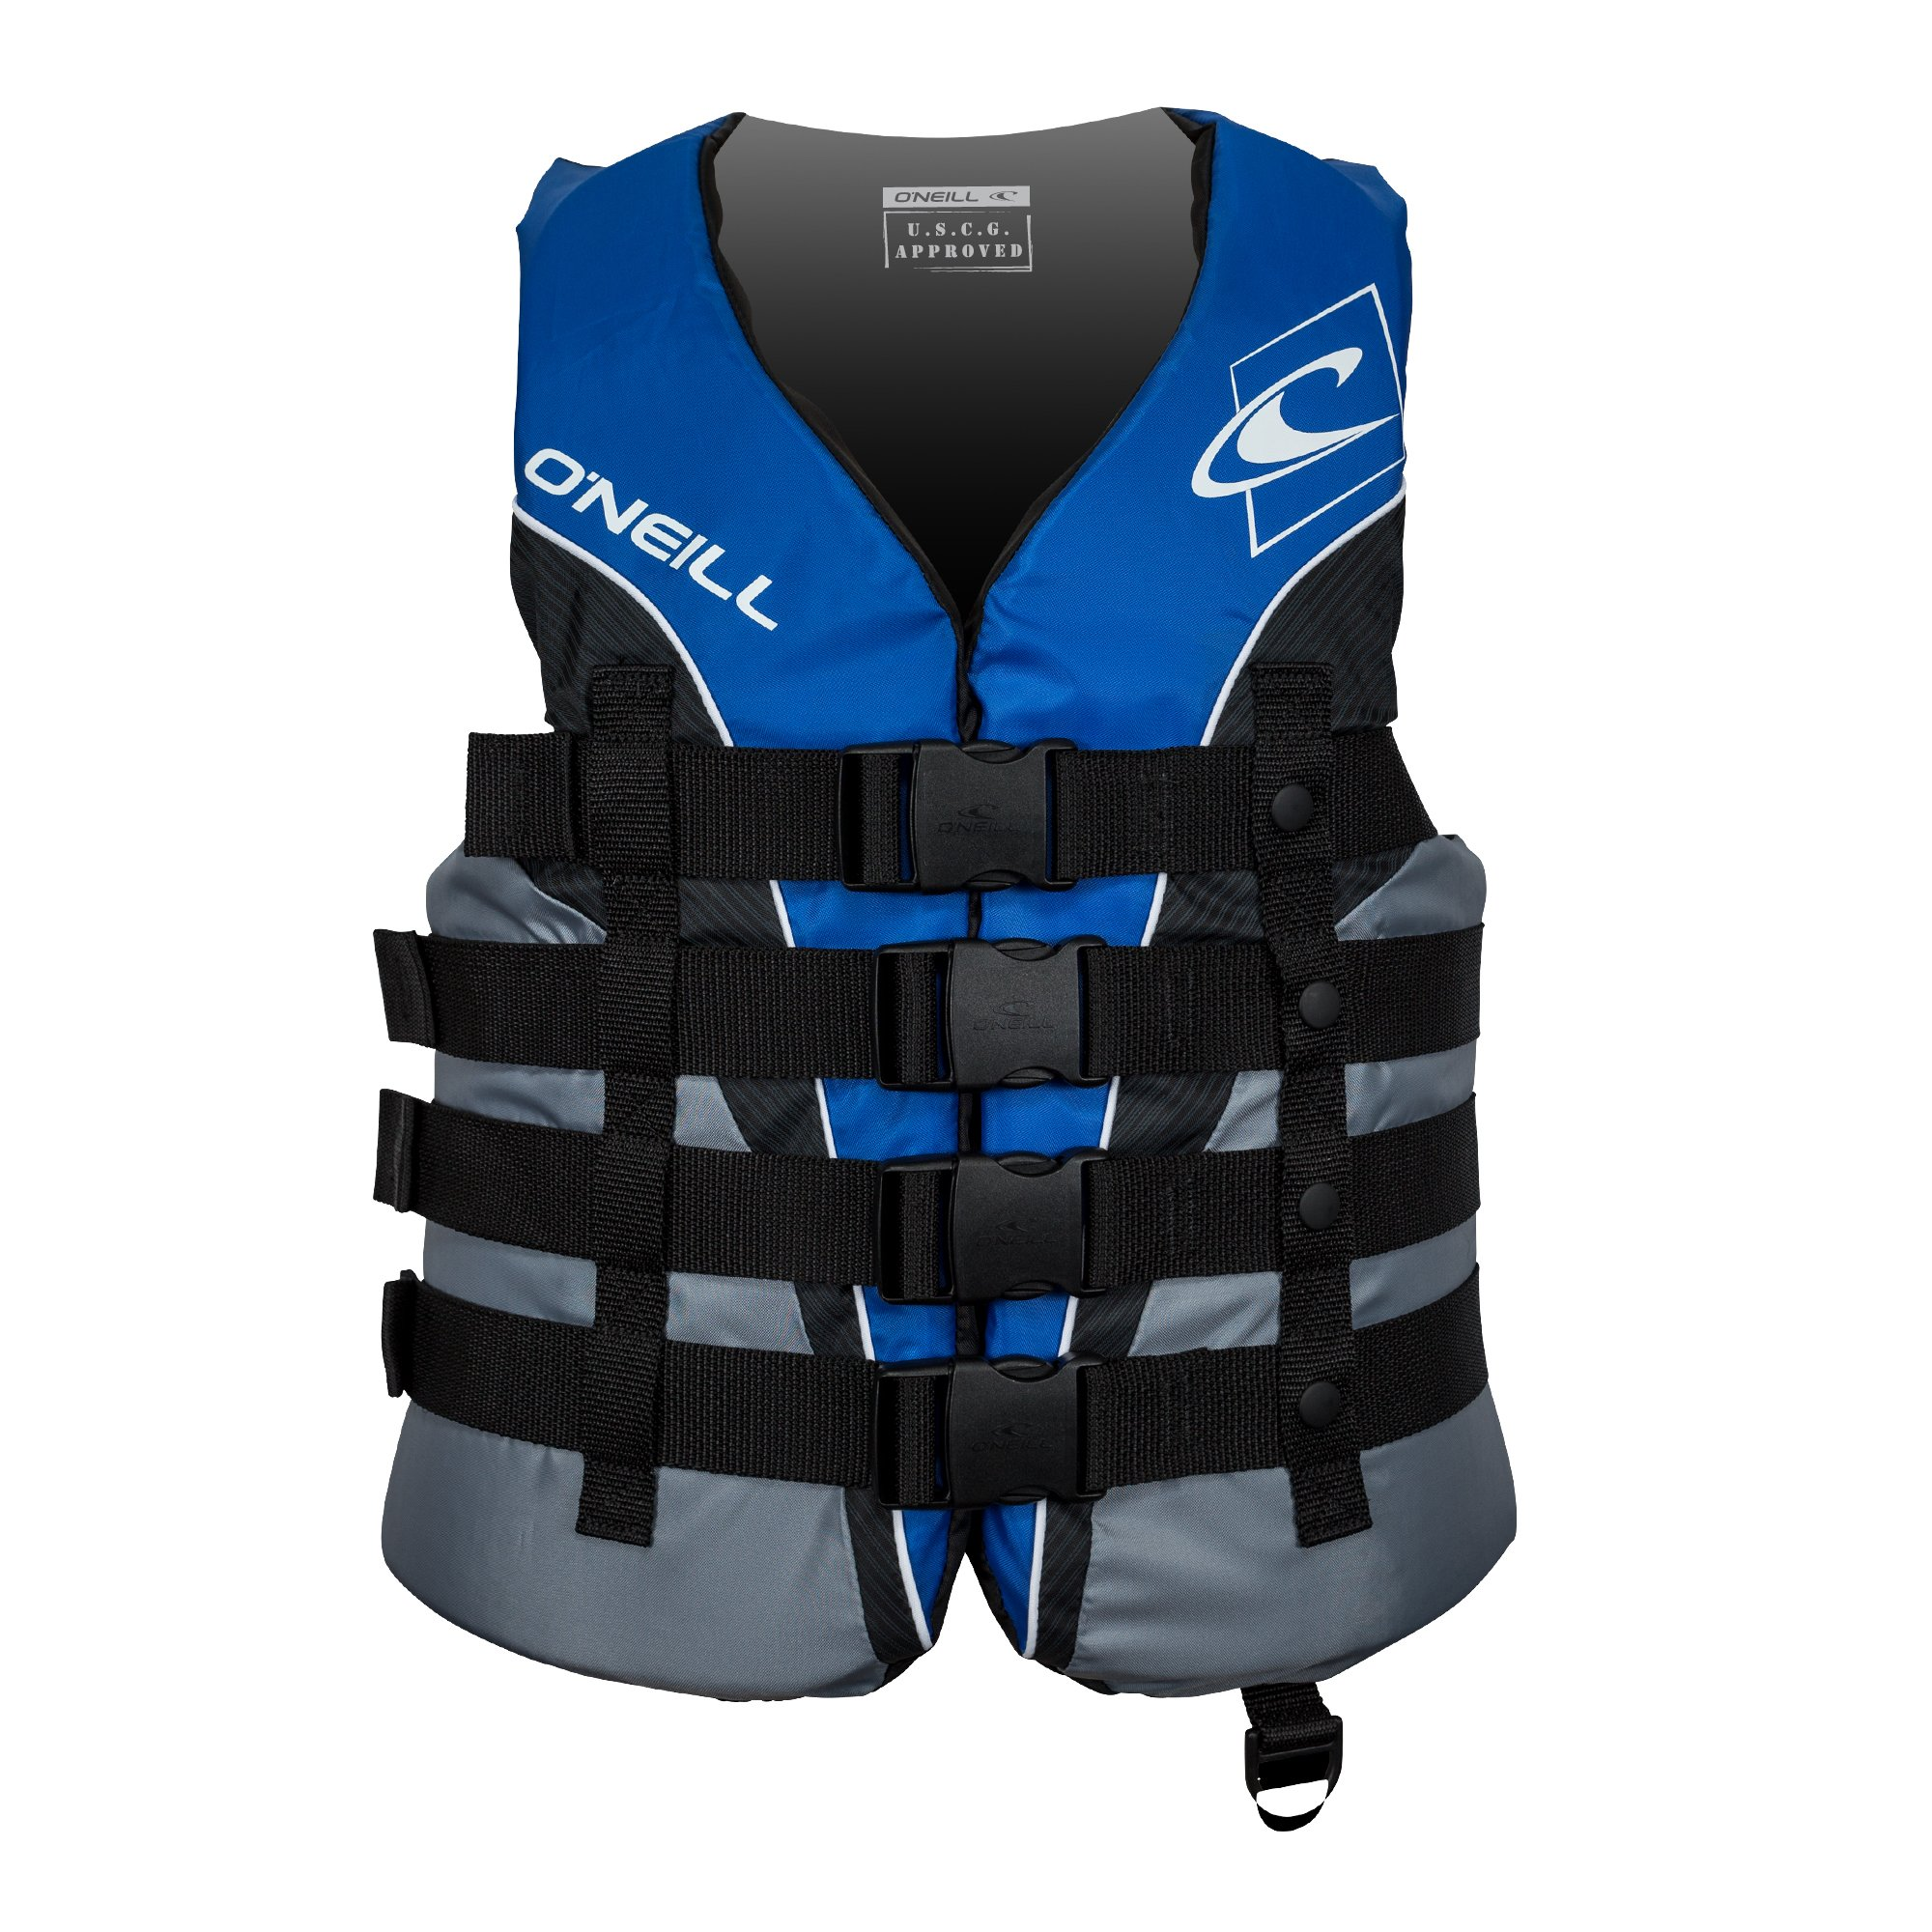 O'Neill  Men's Superlite USCG Life Vest, Pacific/Smoke/Black/White,Medium by O'Neill Wetsuits